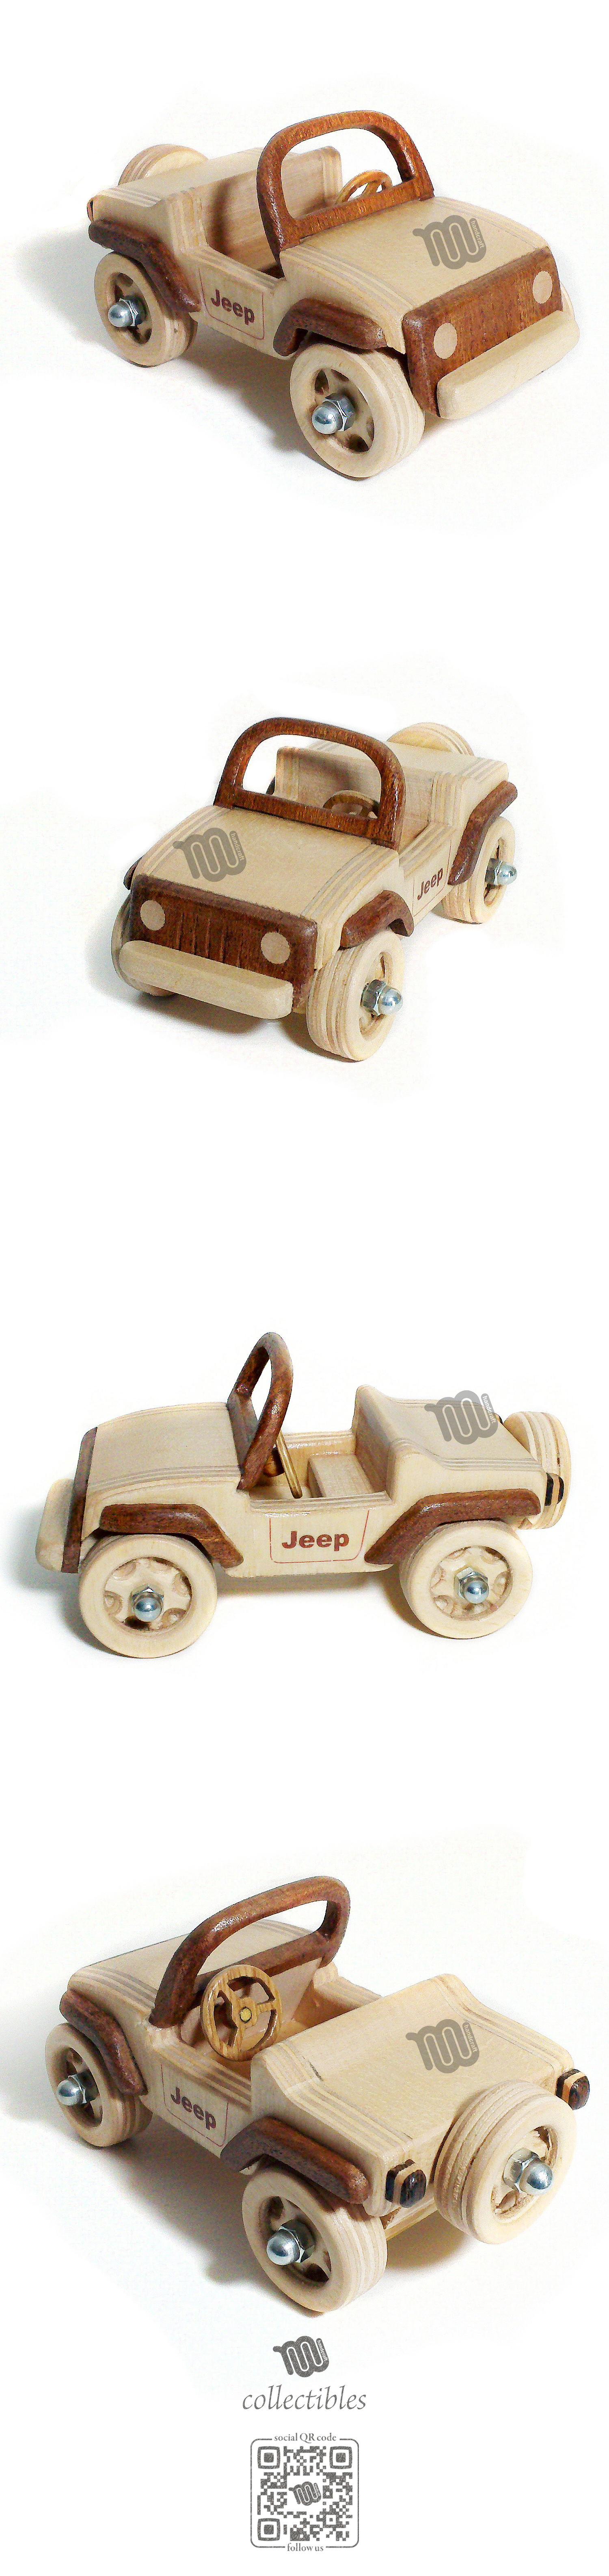 Mini jeep car toys  Mini Jeep  wood replica  Wooden toys Toy and Wood toys